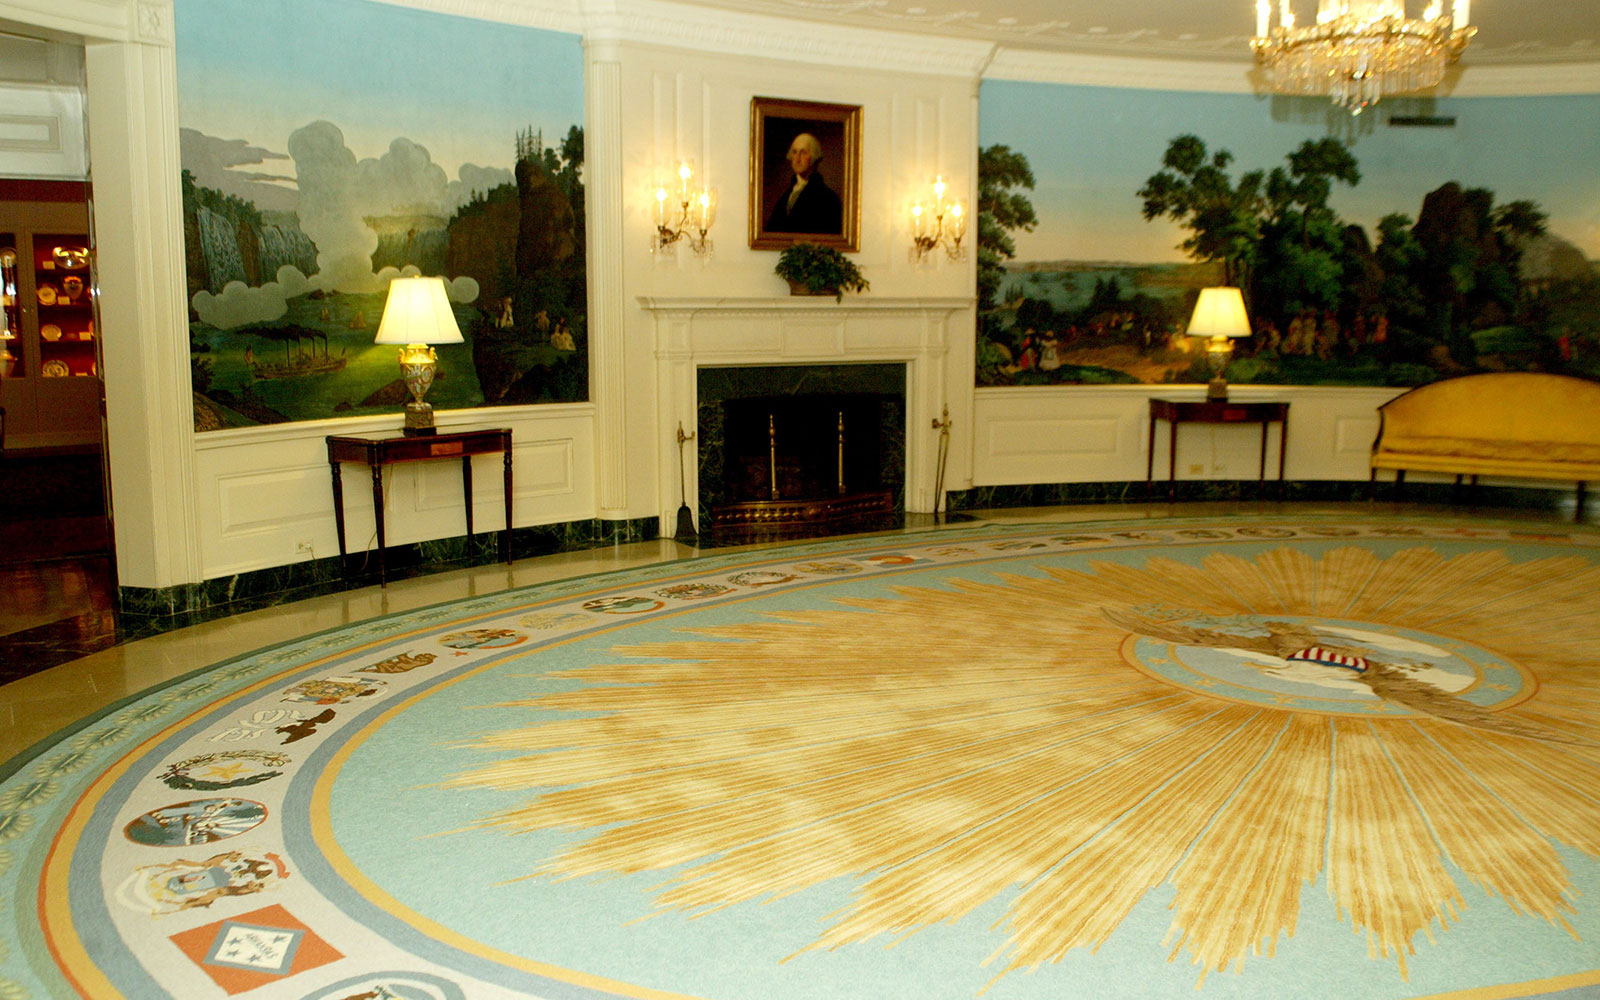 State Department Diplomatic Reception Rooms Tour in Washington DC